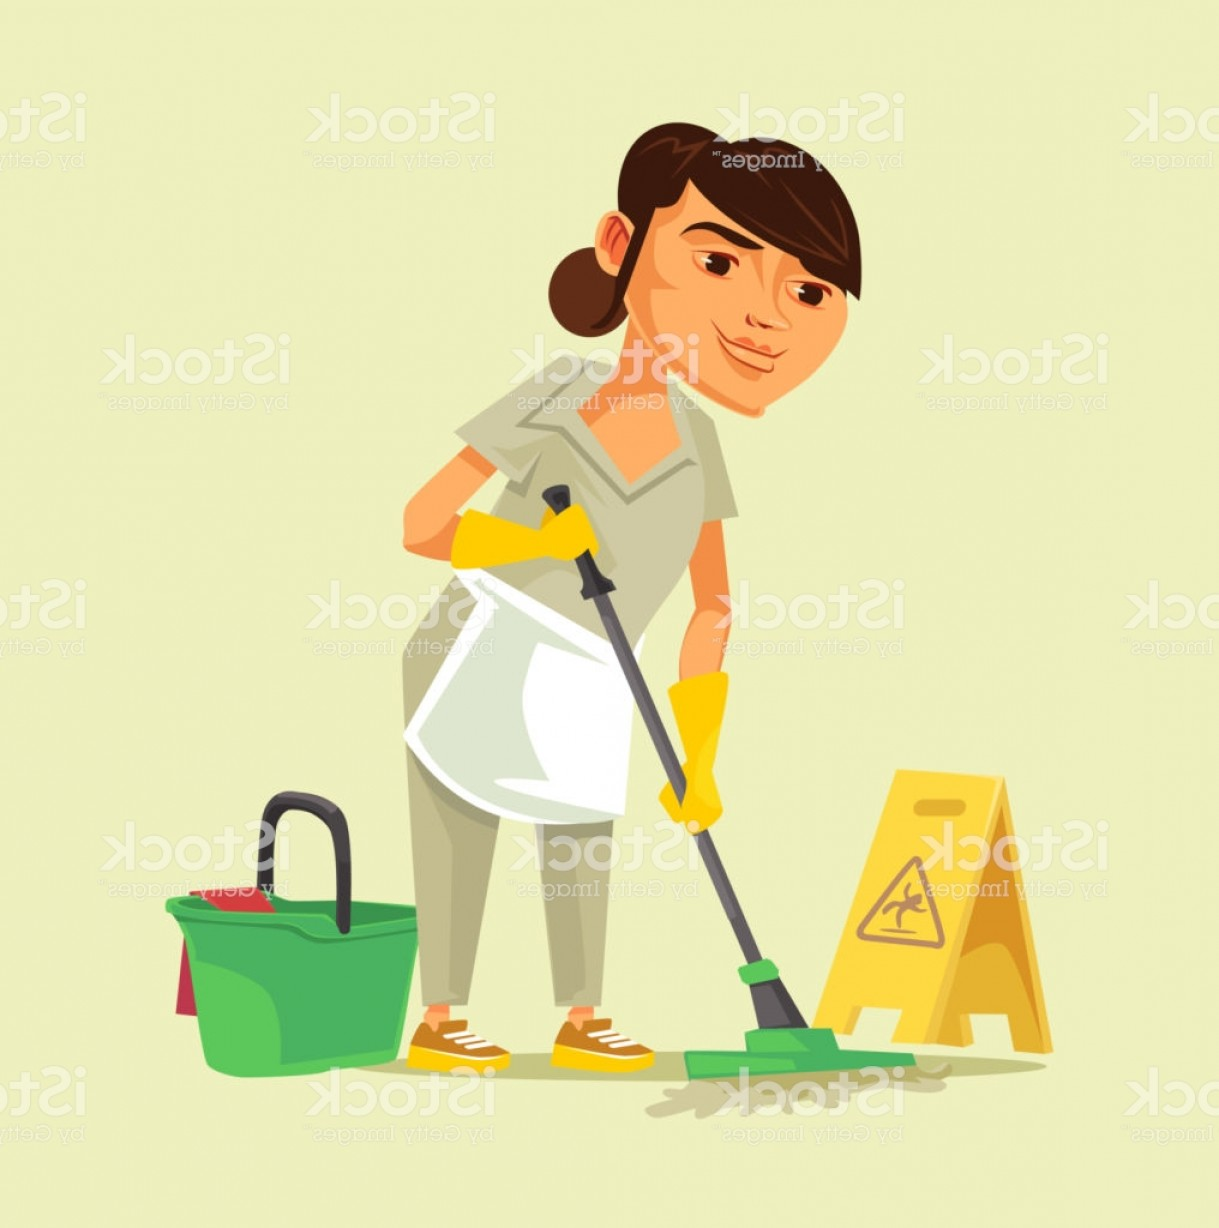 Cleaning Vector Janitorail: Happy Smiling Cleaner Employee Staff Worker Janitorial Maid Woman Character Washing Gm